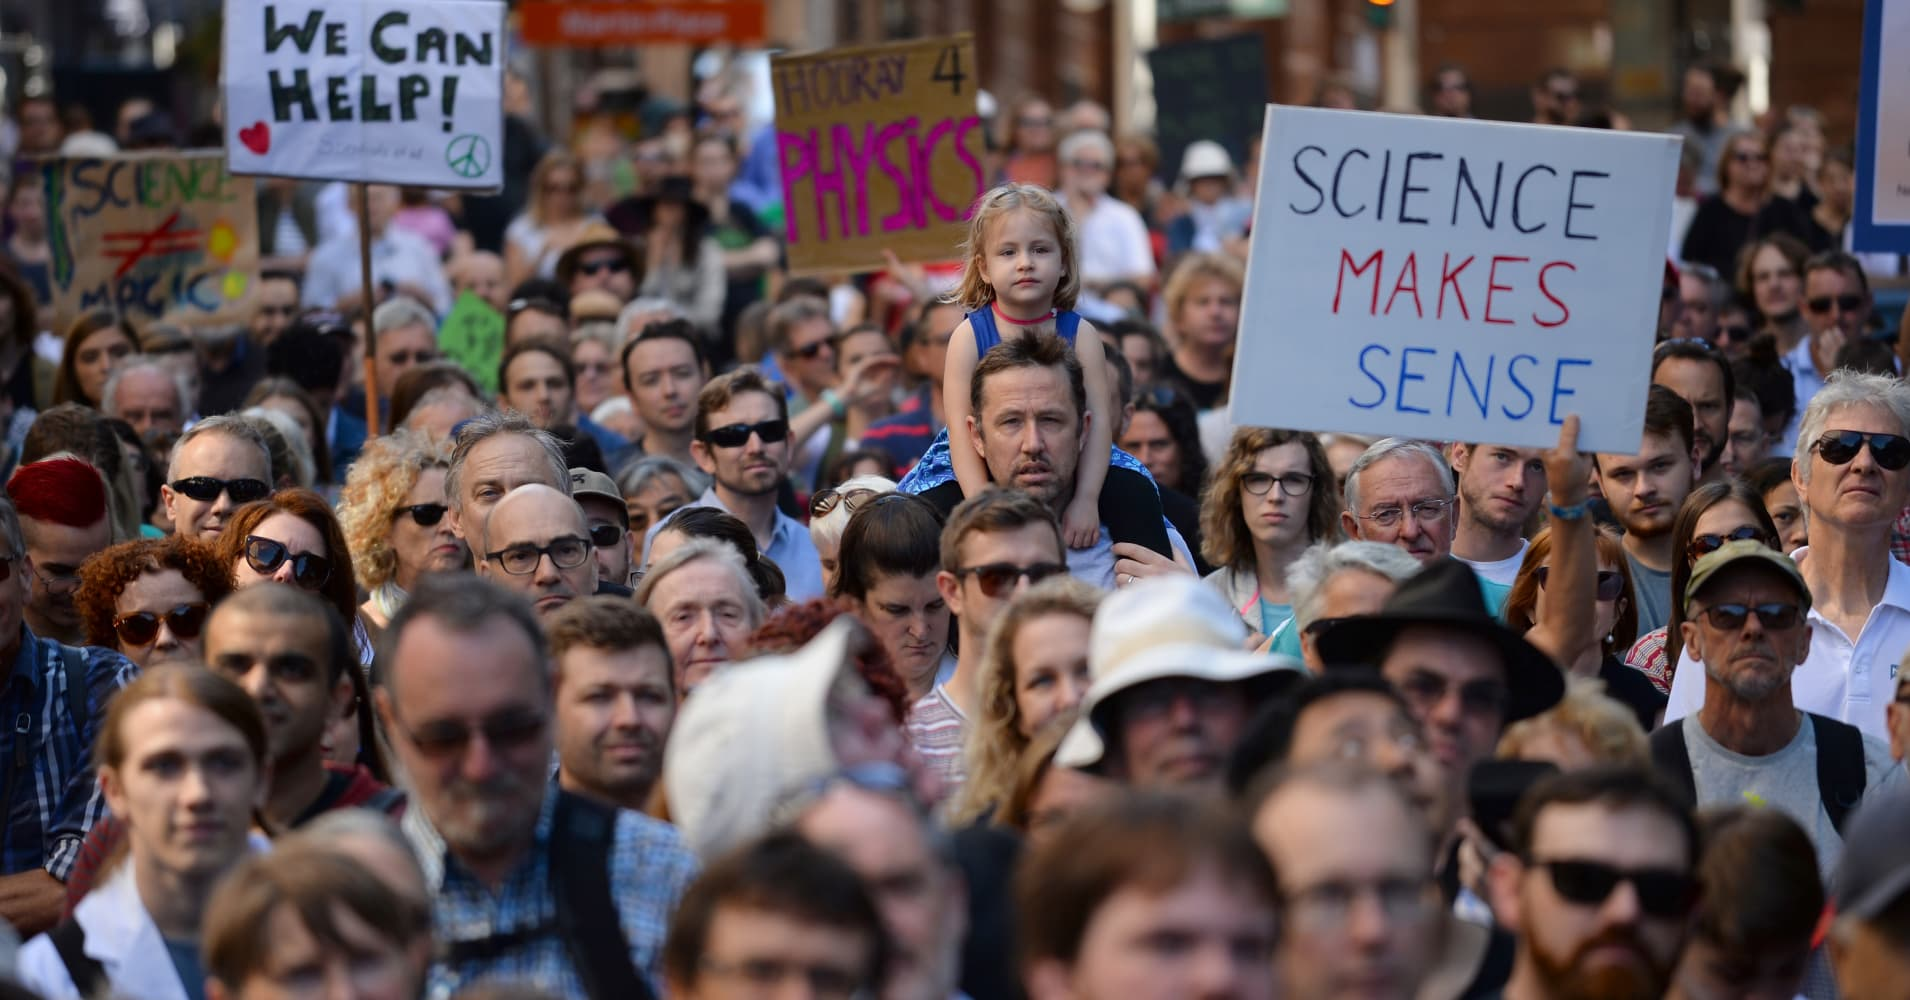 Scientists leave labs, march worldwide in protest against 'alternative facts'